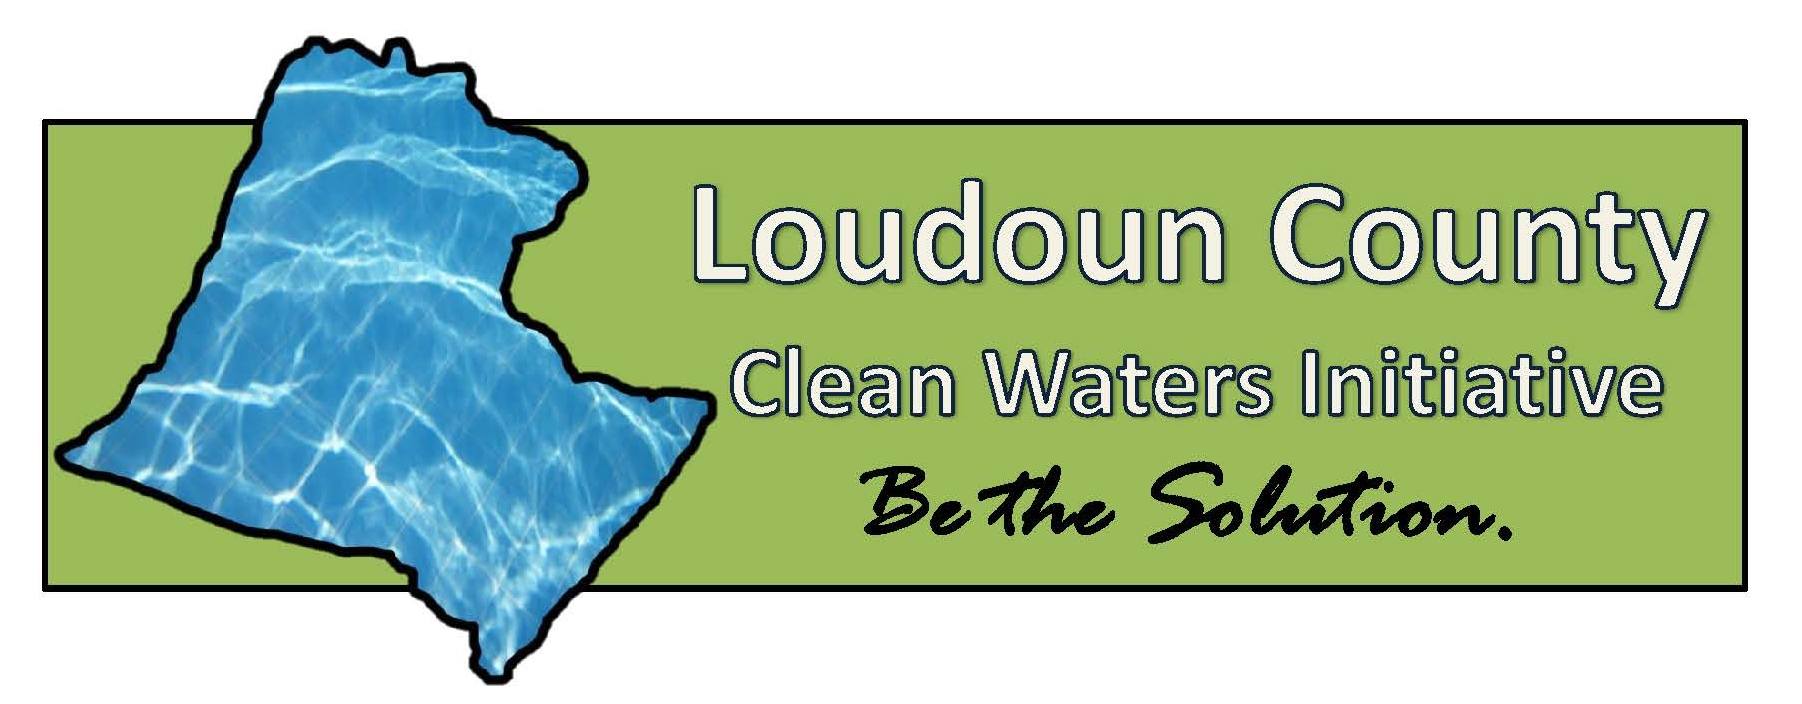 Loudoun Clean Waters Initiative Be the Solution